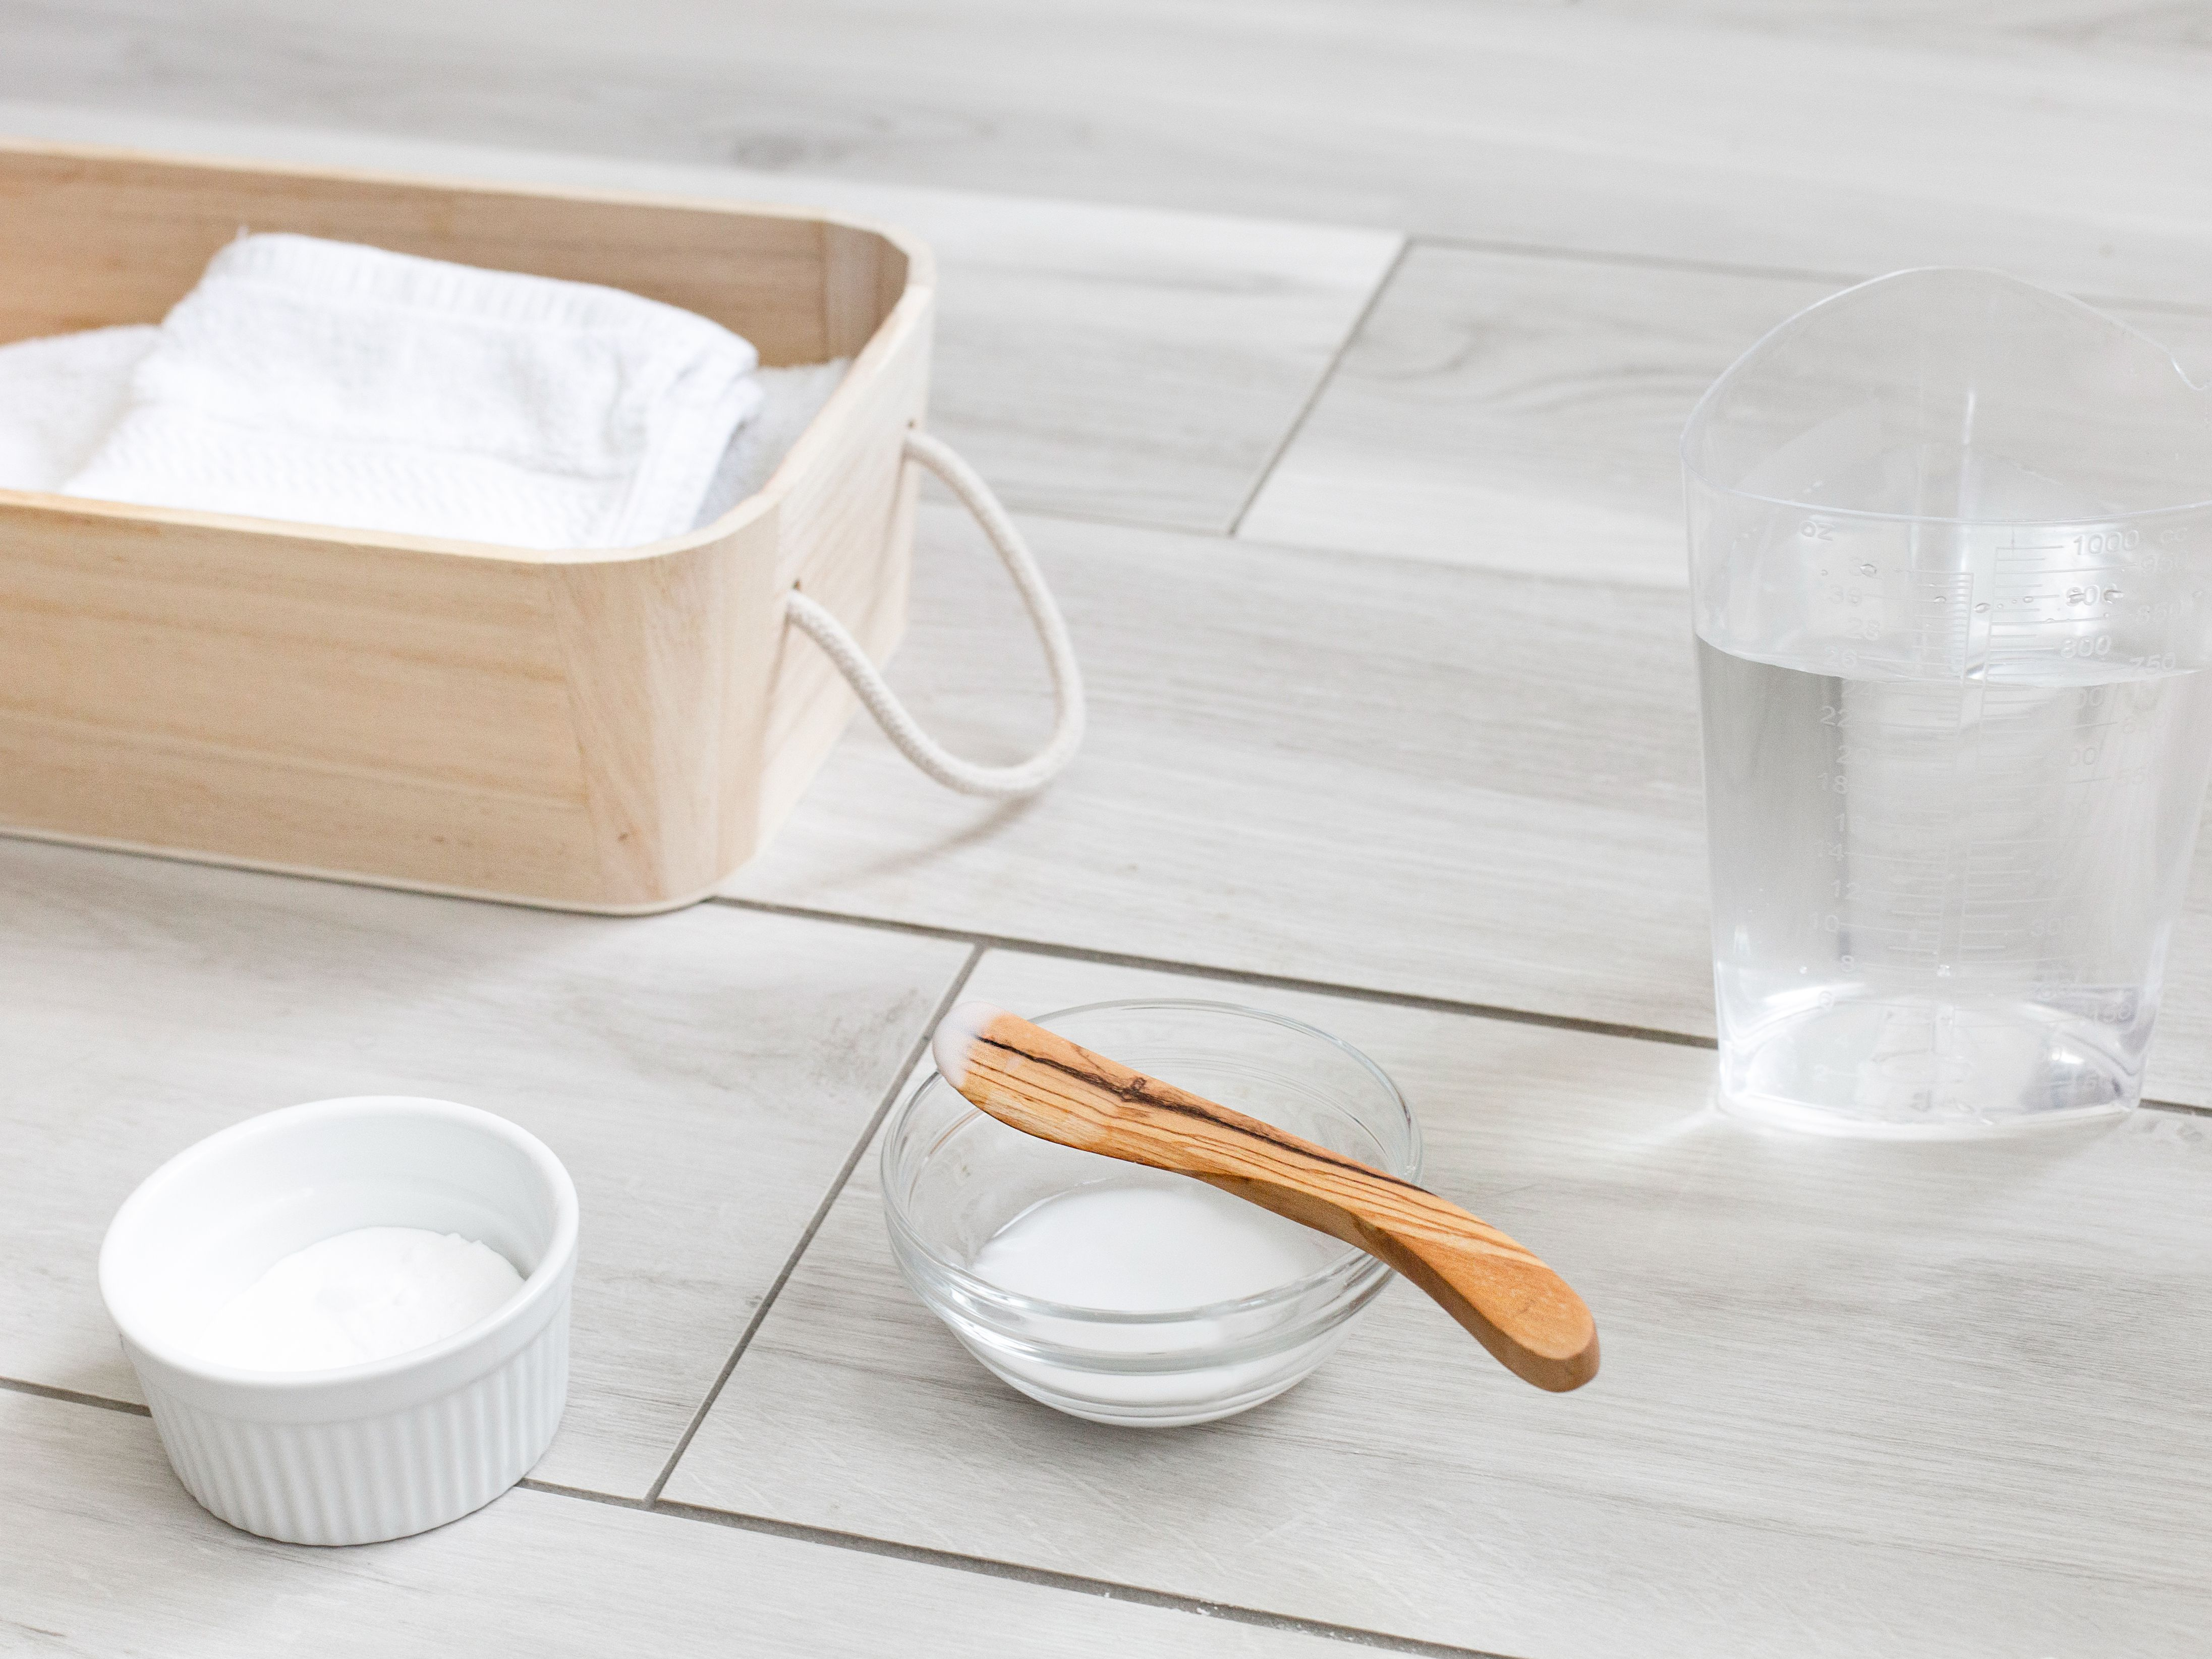 Baking Soda For Stain Pretreating